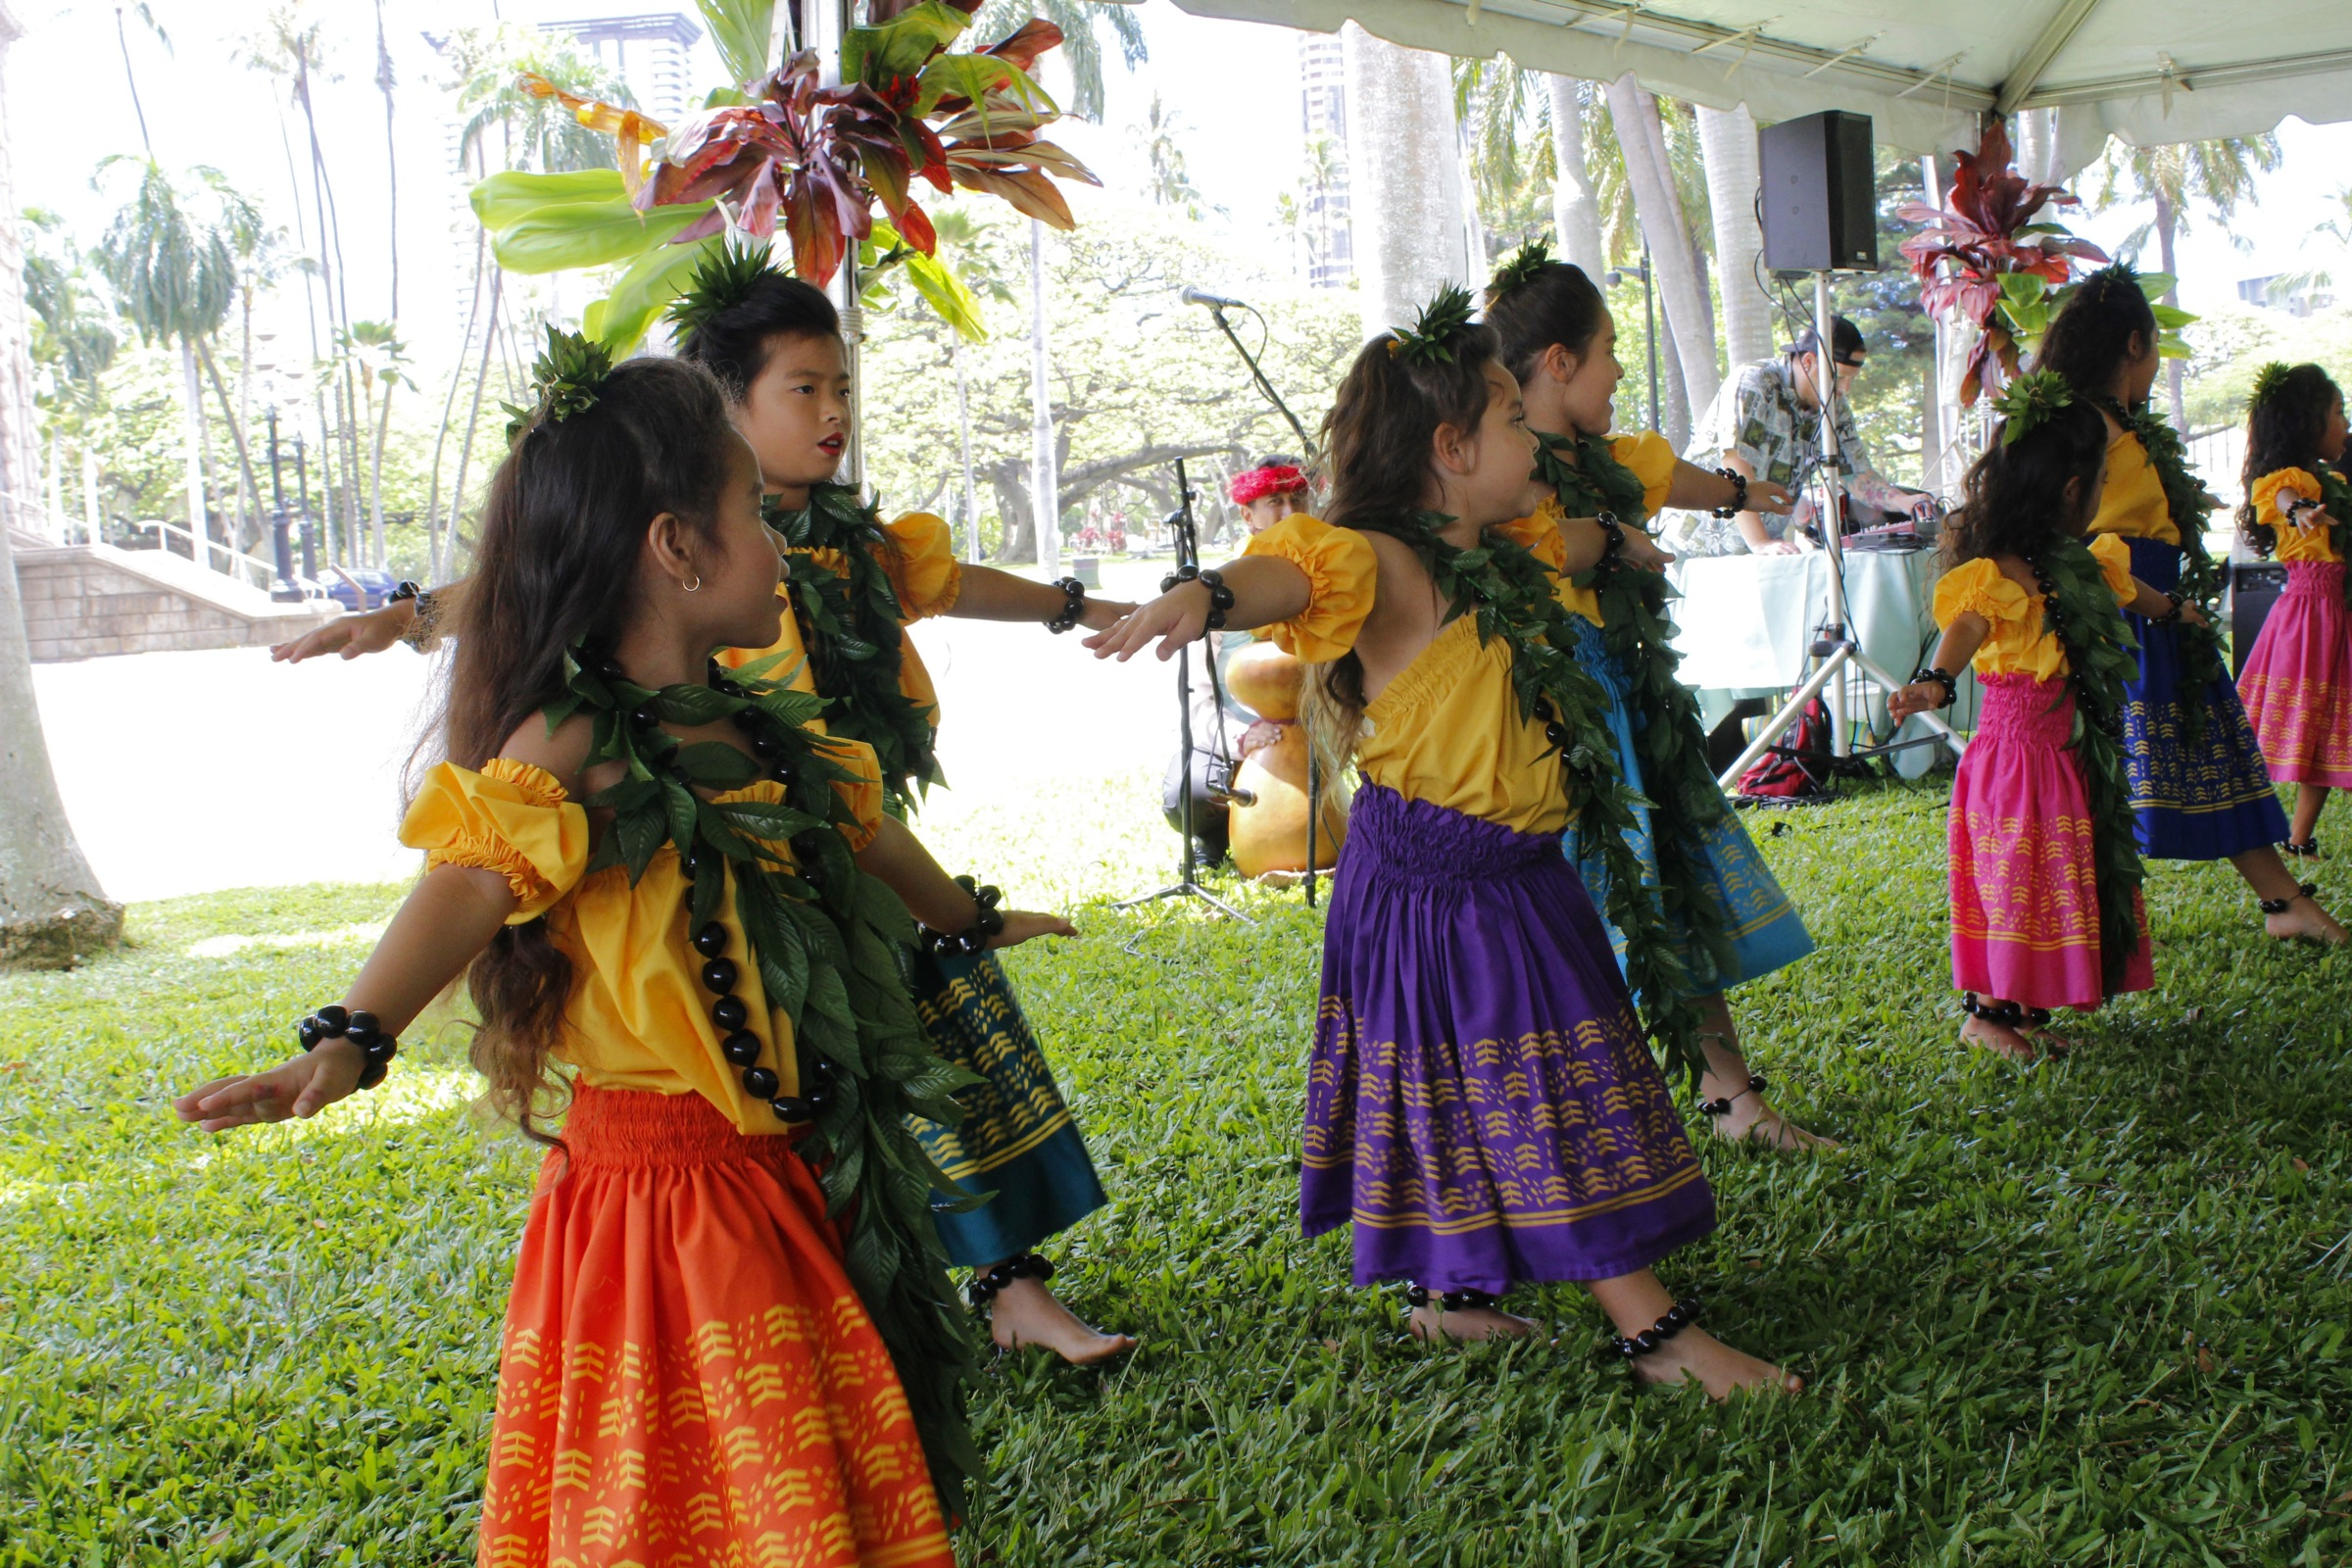 Honolulu celebrates IMBD the Hawaiian Way